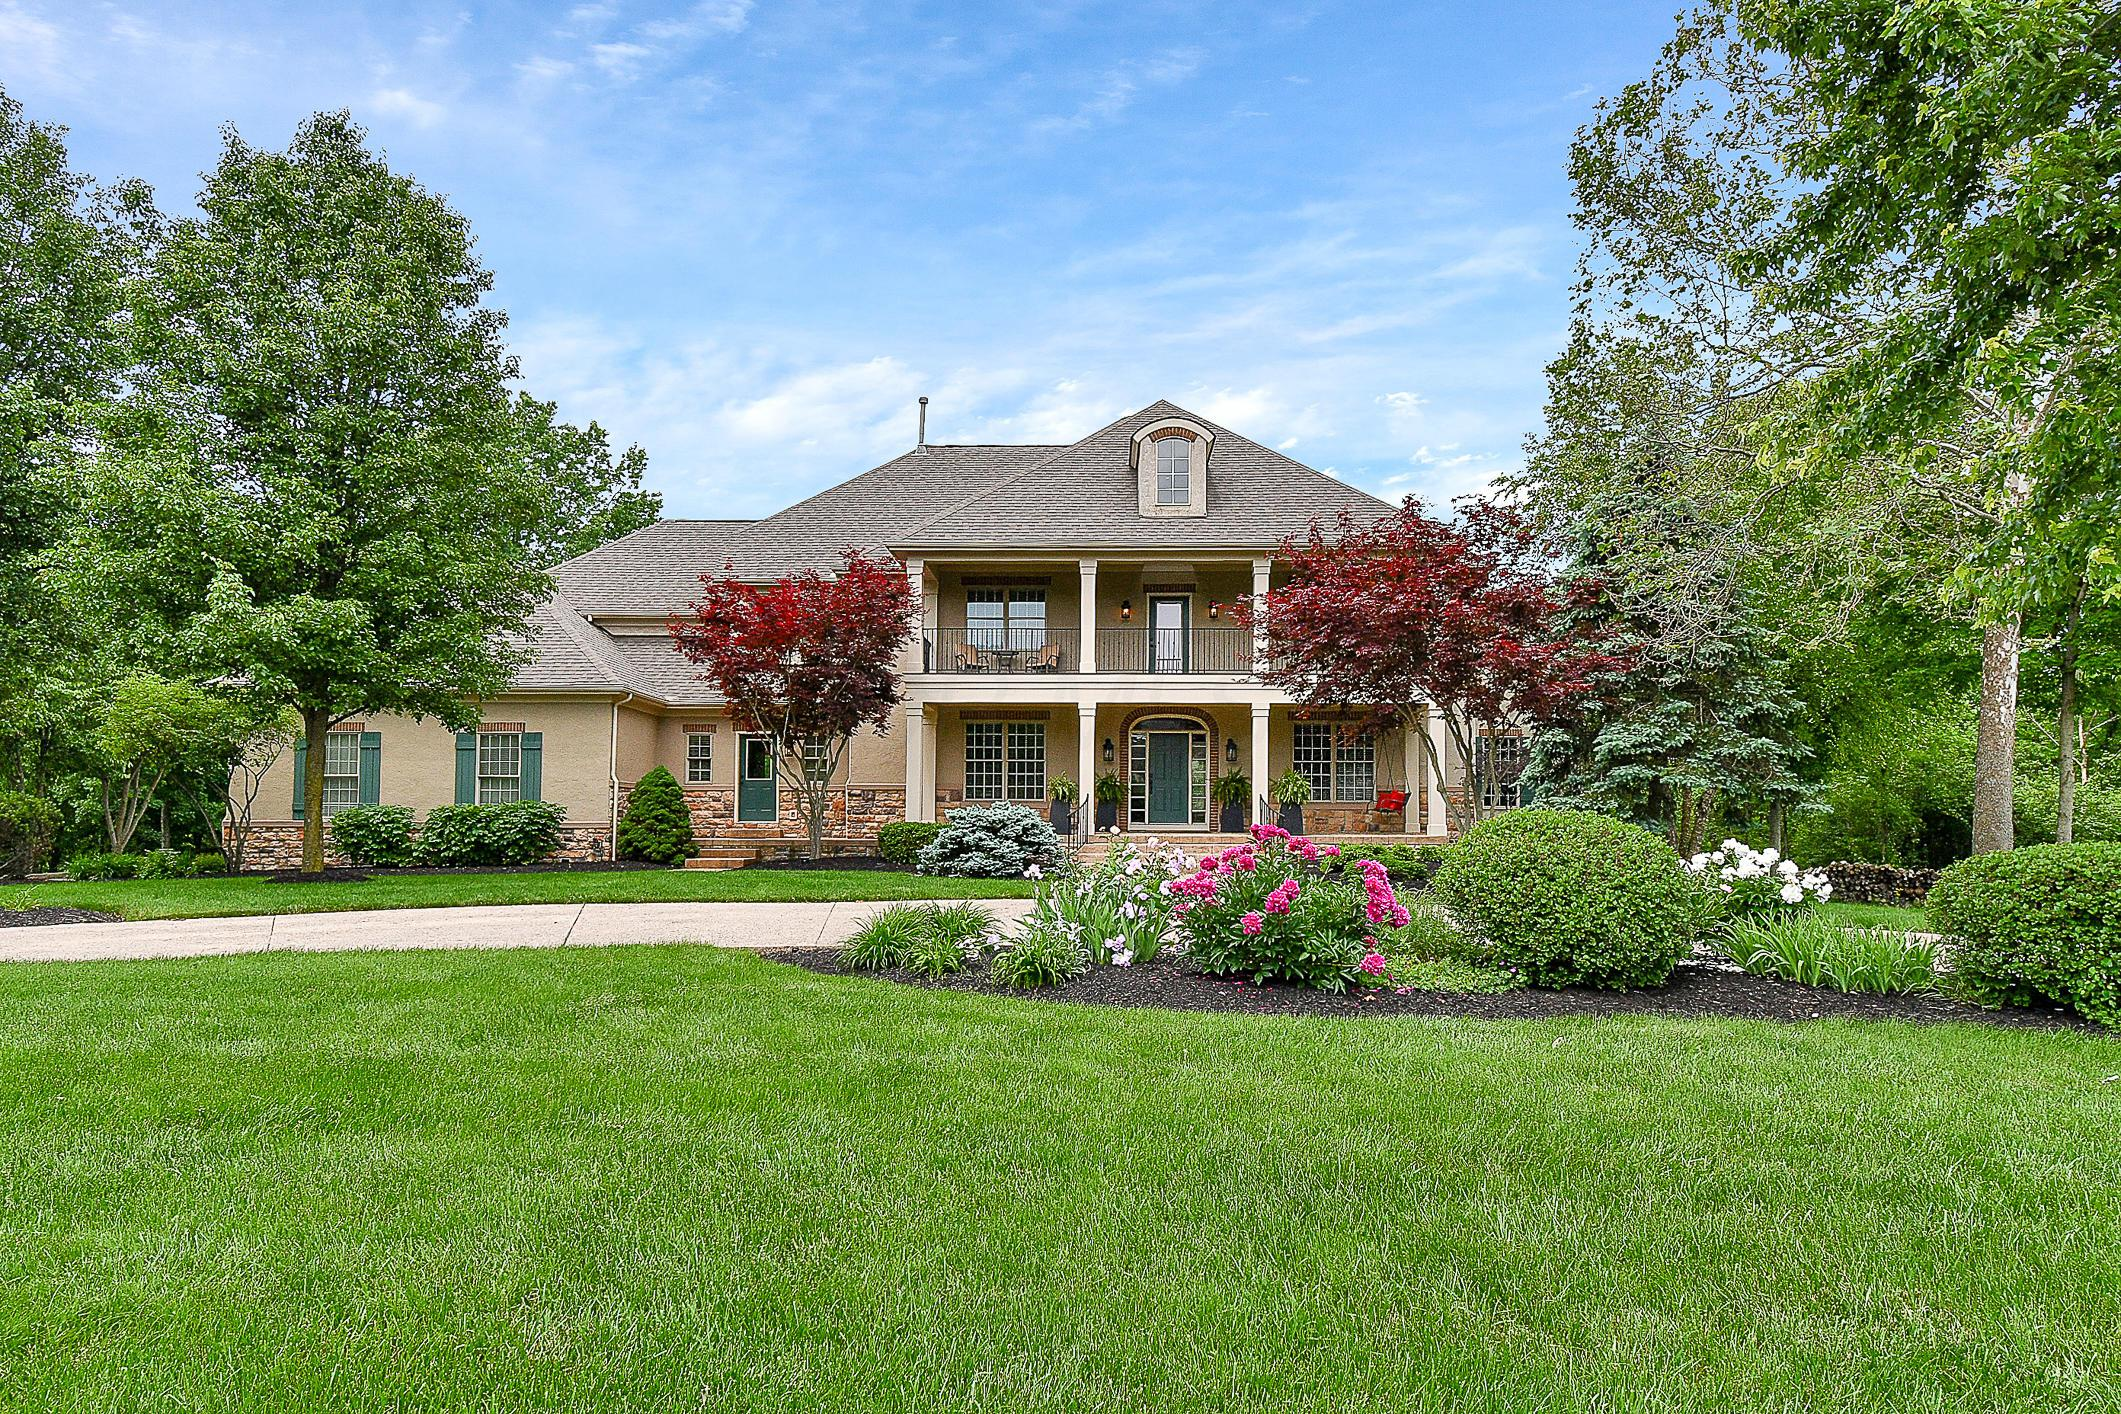 Photo of 8958 Turfway Bend Drive, Powell, OH 43065